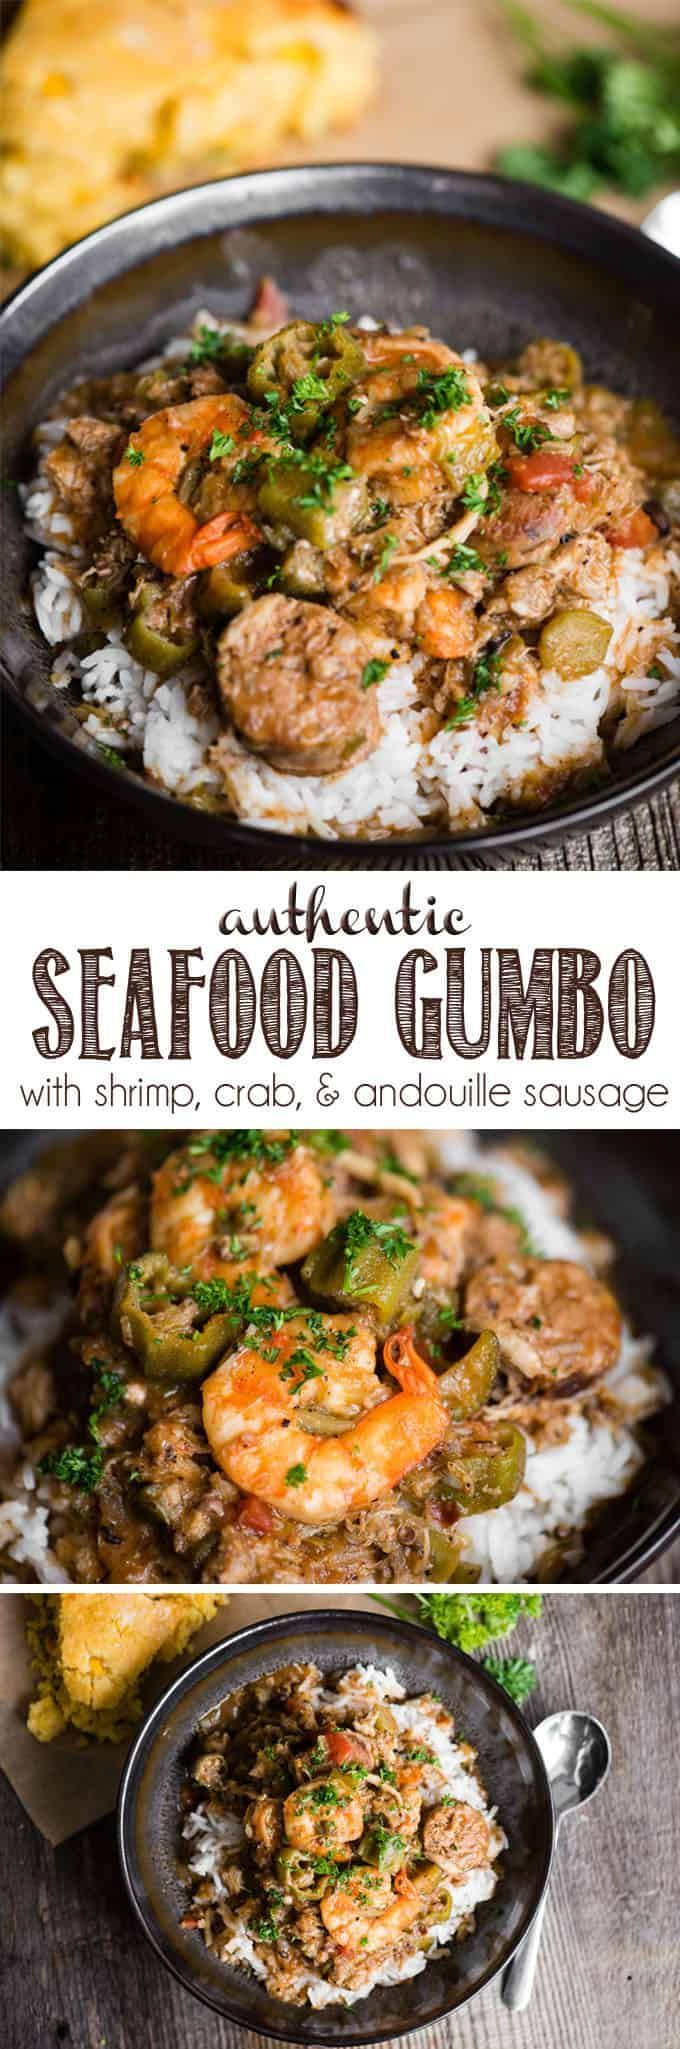 Seafood Gumbo, with shrimp, crab, chicken Andouille sausage, and okra is an authentic spicy Cajun meal served over rice or grits. This recipe is not super easy as it takes time to cook to properly develop all of the flavors. This recipe all starts with a dark and rich roux made from bacon drippings. #gumbo #seafood #cajun